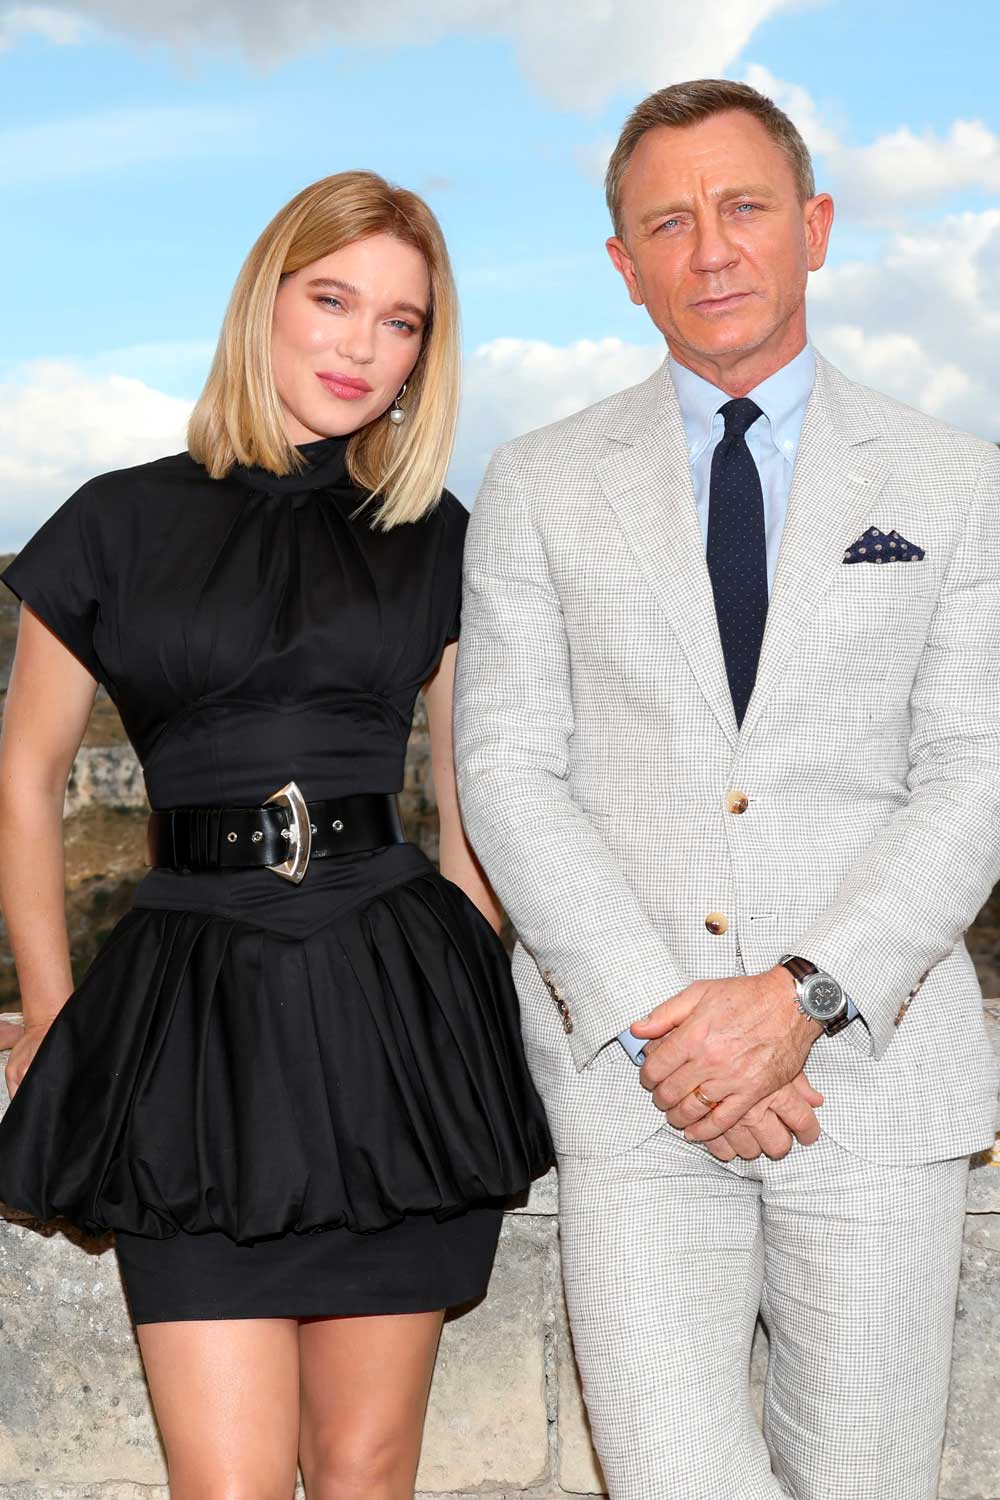 """MATERA, ITALY - SEPTEMBER 09: Actress Léa Seydoux and actor Daniel Craig pose as they arrive on set of the James Bond last movie """"No Time To Die"""" on September 09, 2019 in Matera, Italy. on Craig's wrist in clear view is the 2017 Omega Speedmaster '57 Chronograph from the 1957 Trilogy on a NATO strap (Photo by Franco Origlia/Getty Images)"""